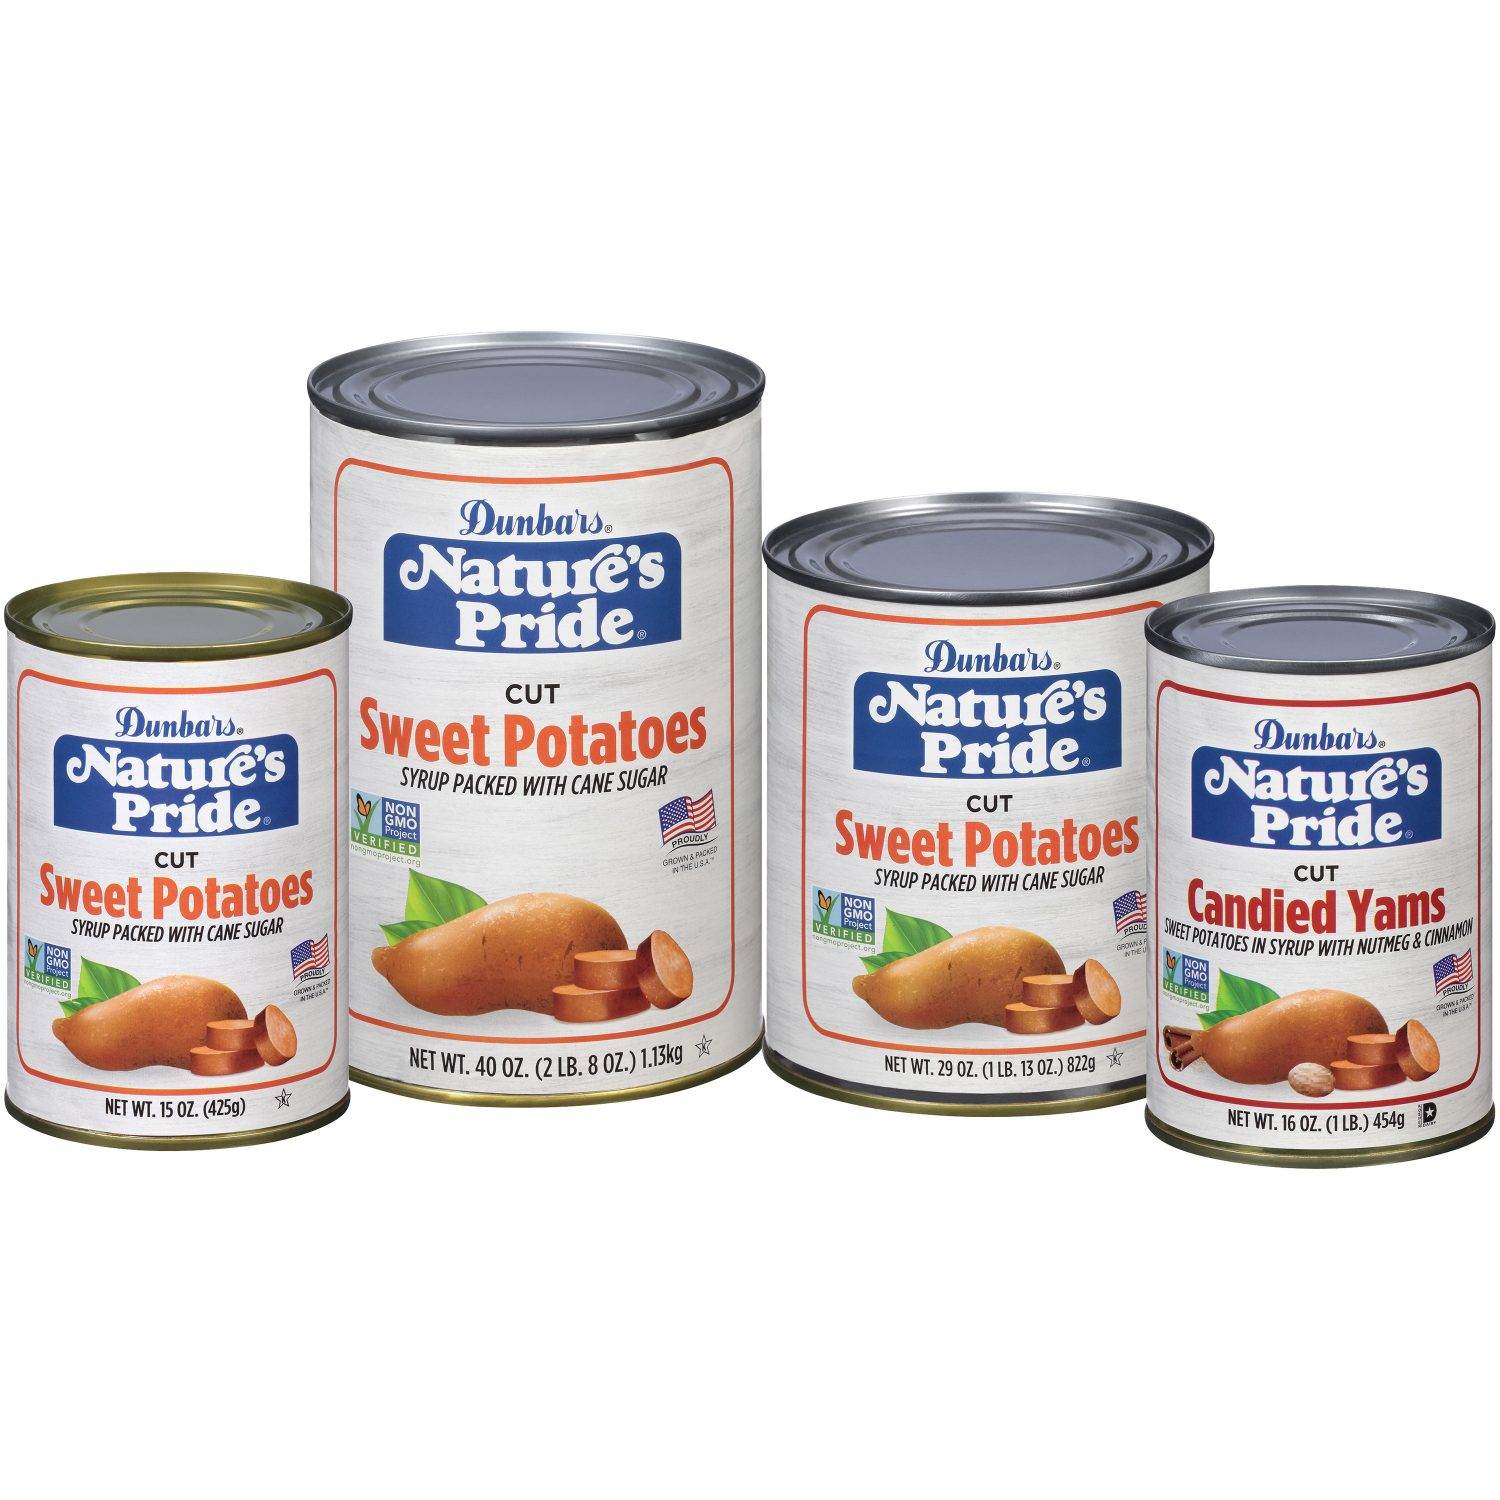 Nature's Pride Canned Foods